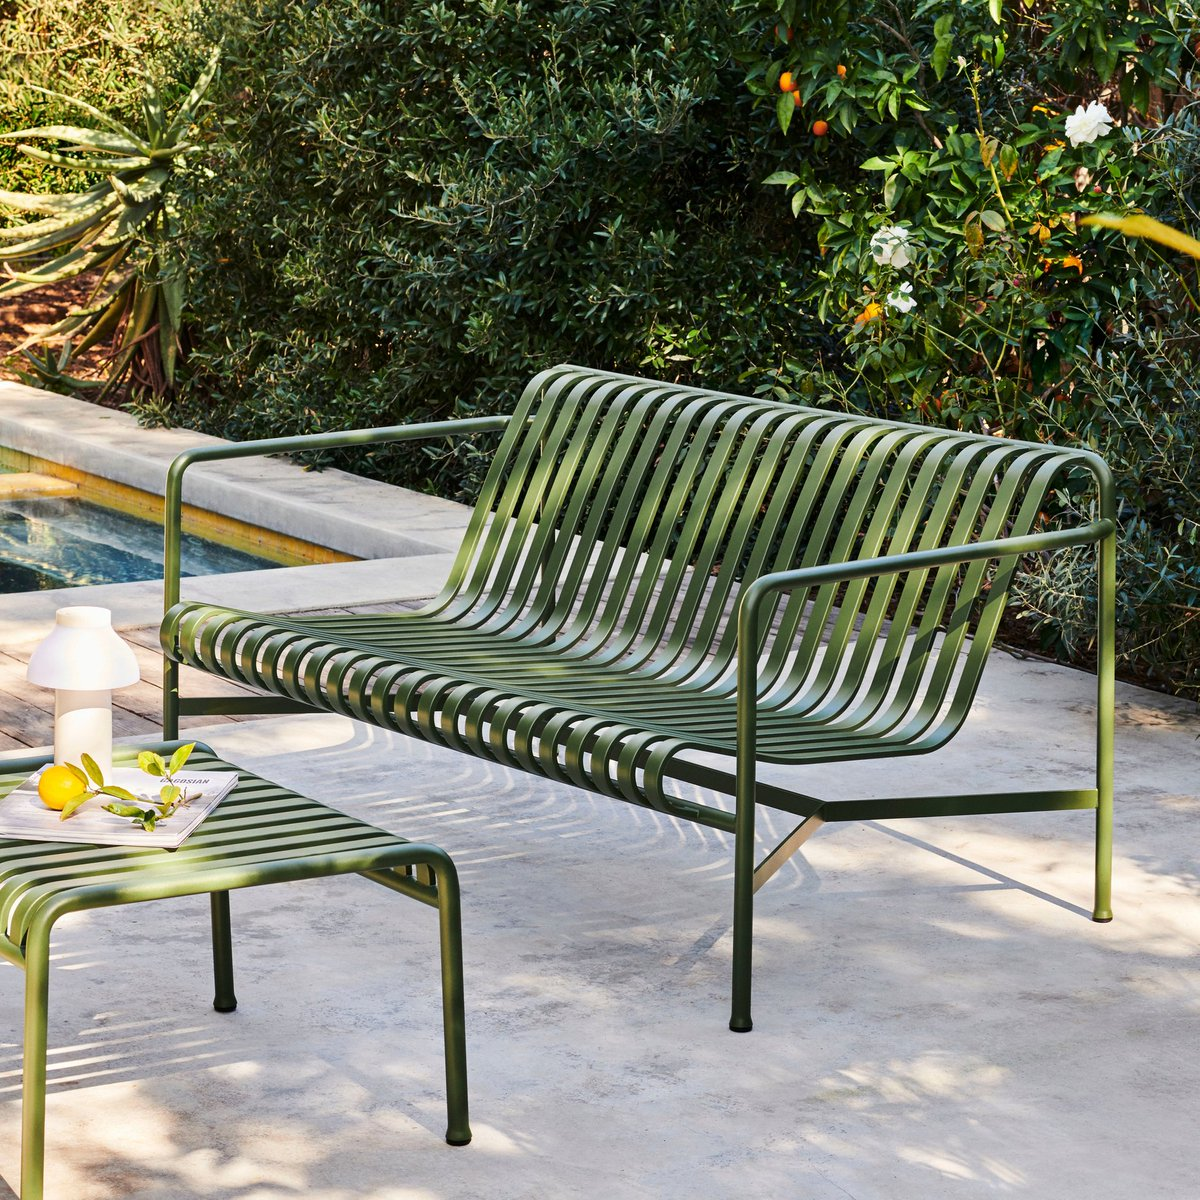 Enjoy summer to the fullest with the Palissade range by @ronanerwanbouroullec for @haydesign. In stock in a variety of colours and shapes, this is an outdoor evergreen that looks equally beautiful by the poolside, on the balcony and in the garden.  http://bit.ly/SCPPalissade pic.twitter.com/GdcAd3KmVZ